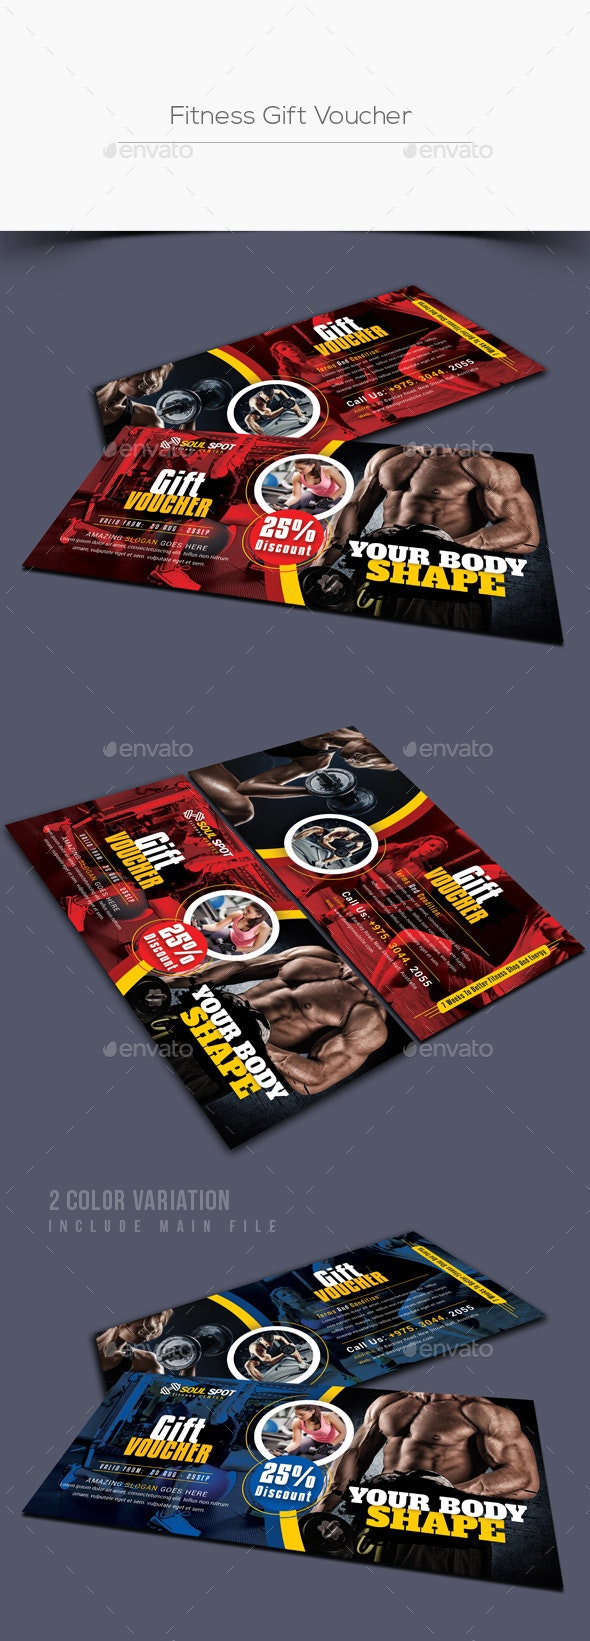 Fitness Gift Voucher - Loyalty Cards Cards & Invites